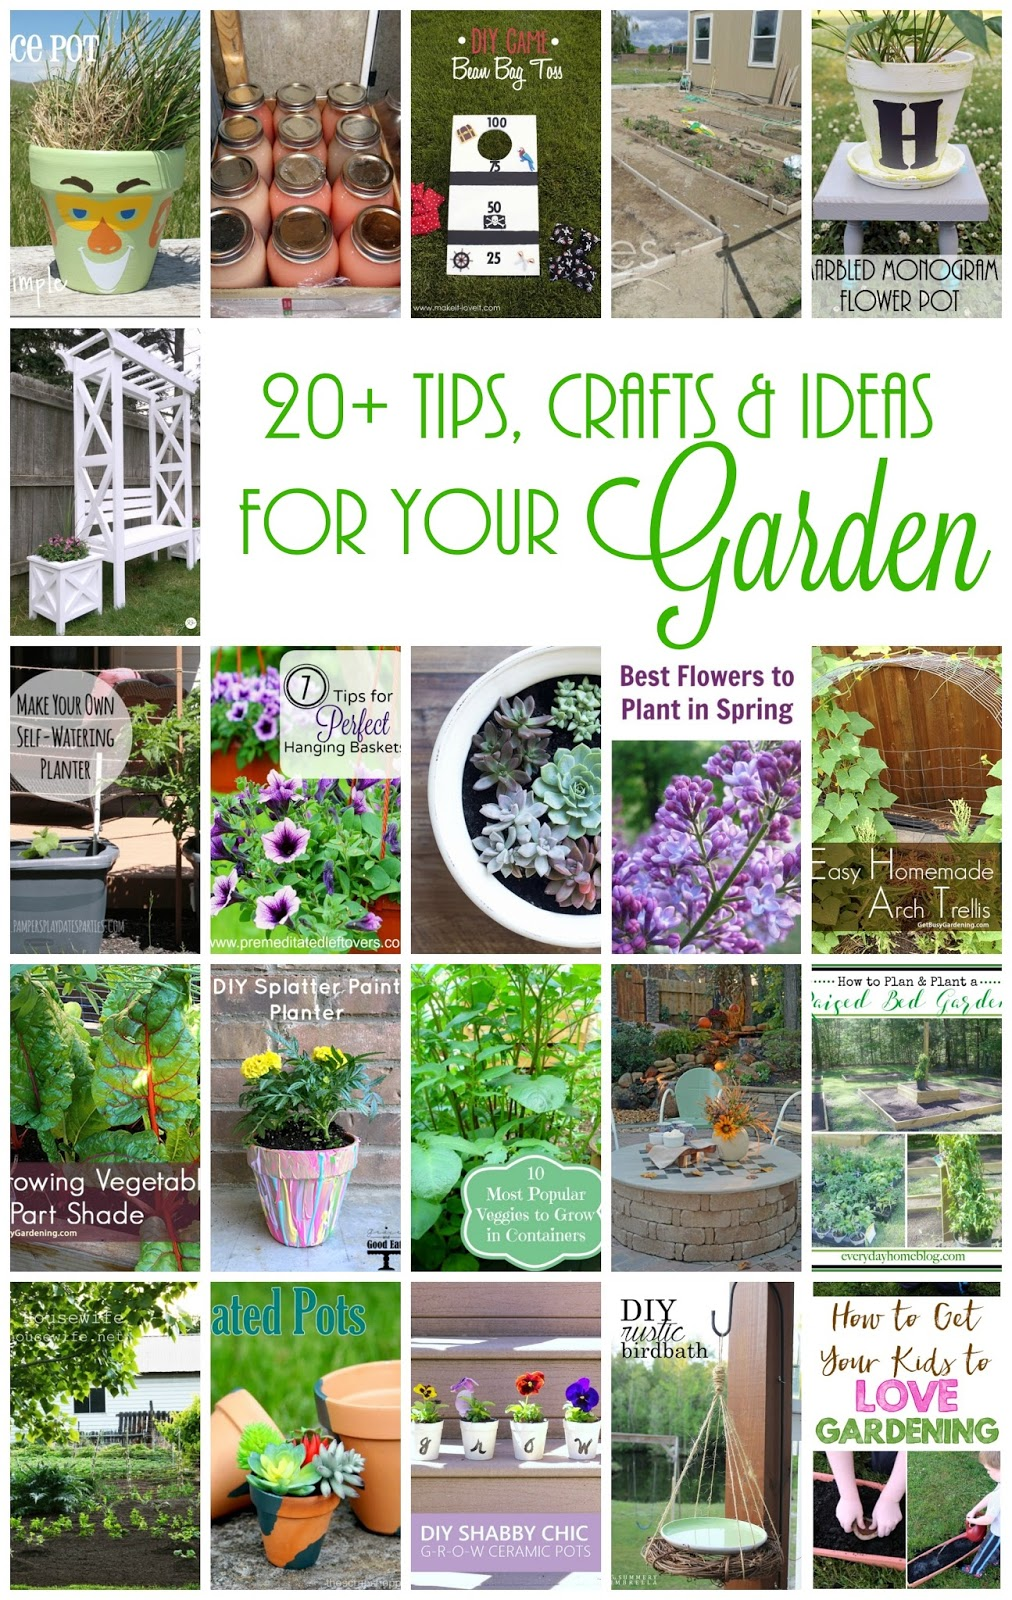 http://makingtheworldcuter.com/wp-content/uploads/2016/05/20-Ideas-Crafts-and-Tips-for-Your-Garden.jpg